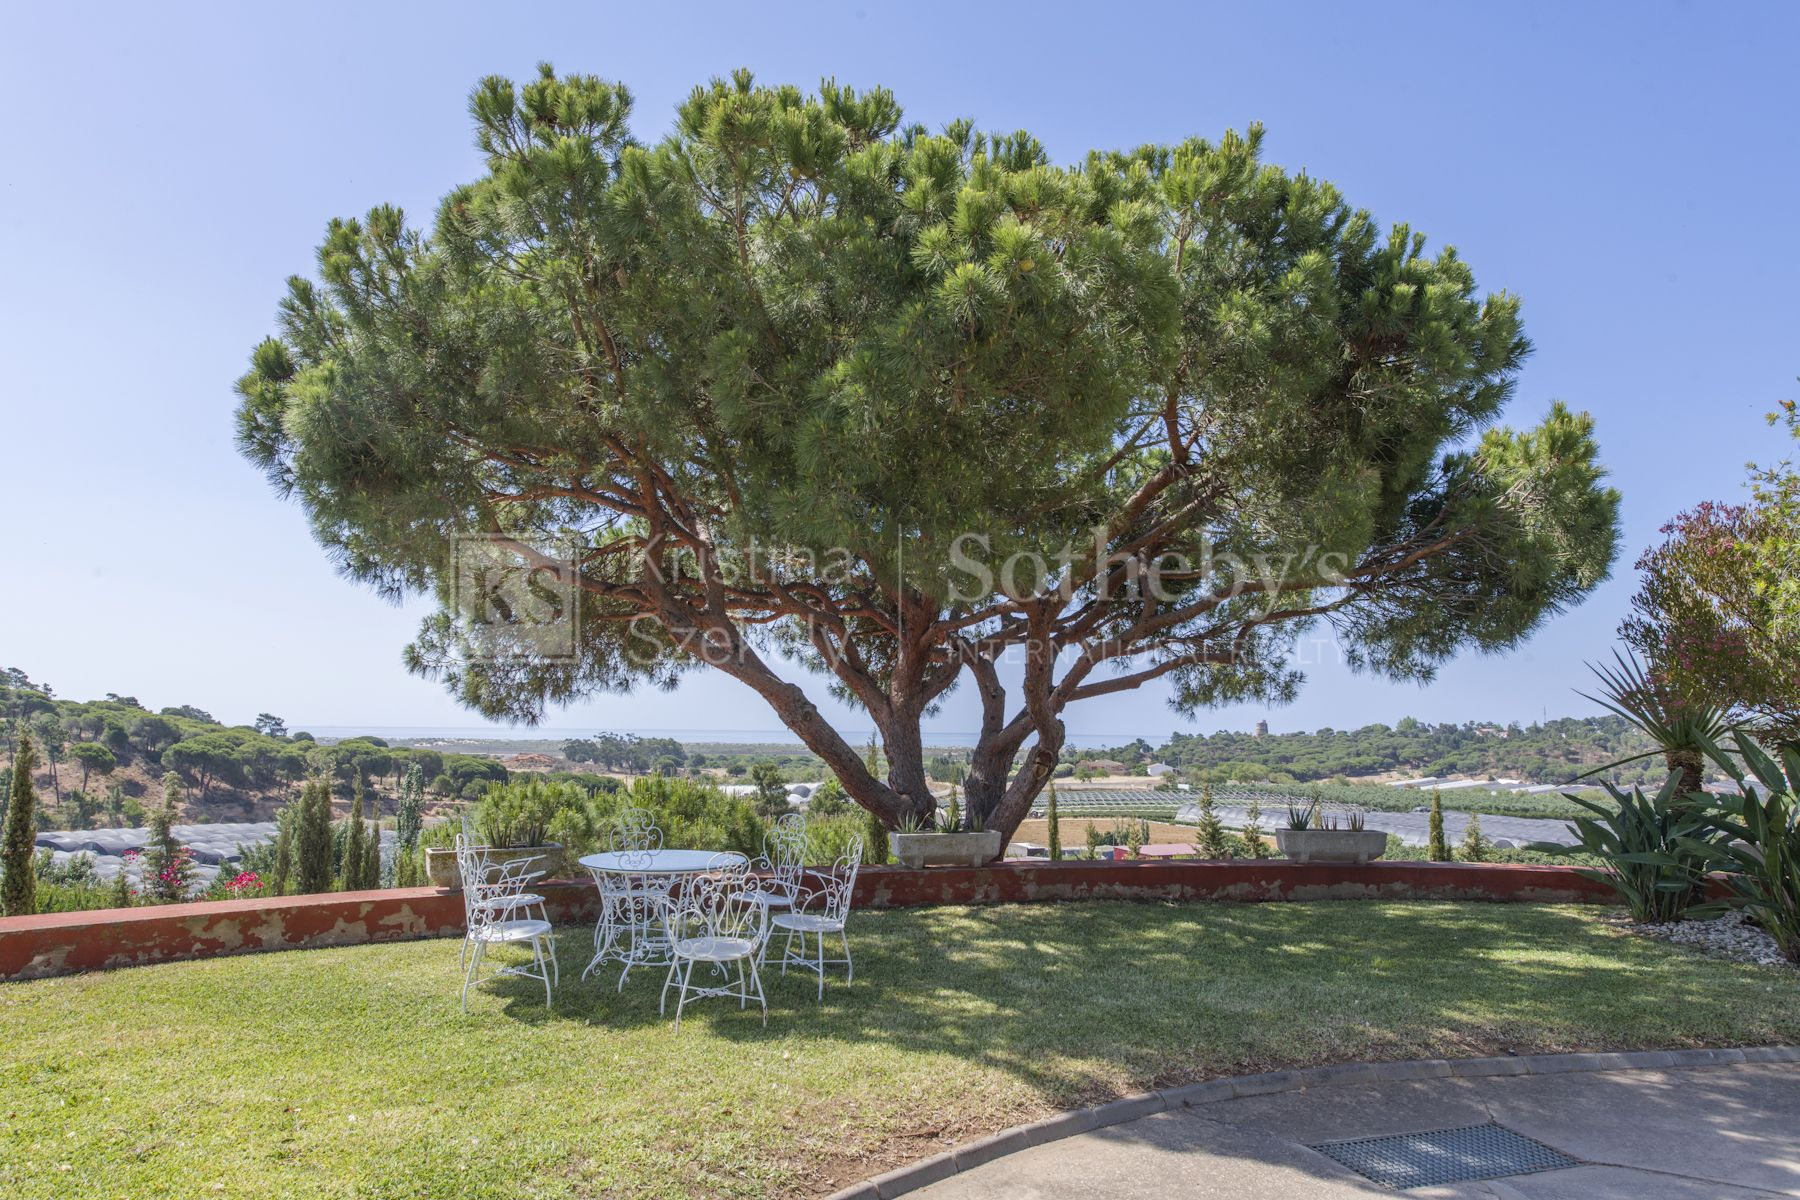 Exclusive country house with seafront views located in a privileged natural environment.